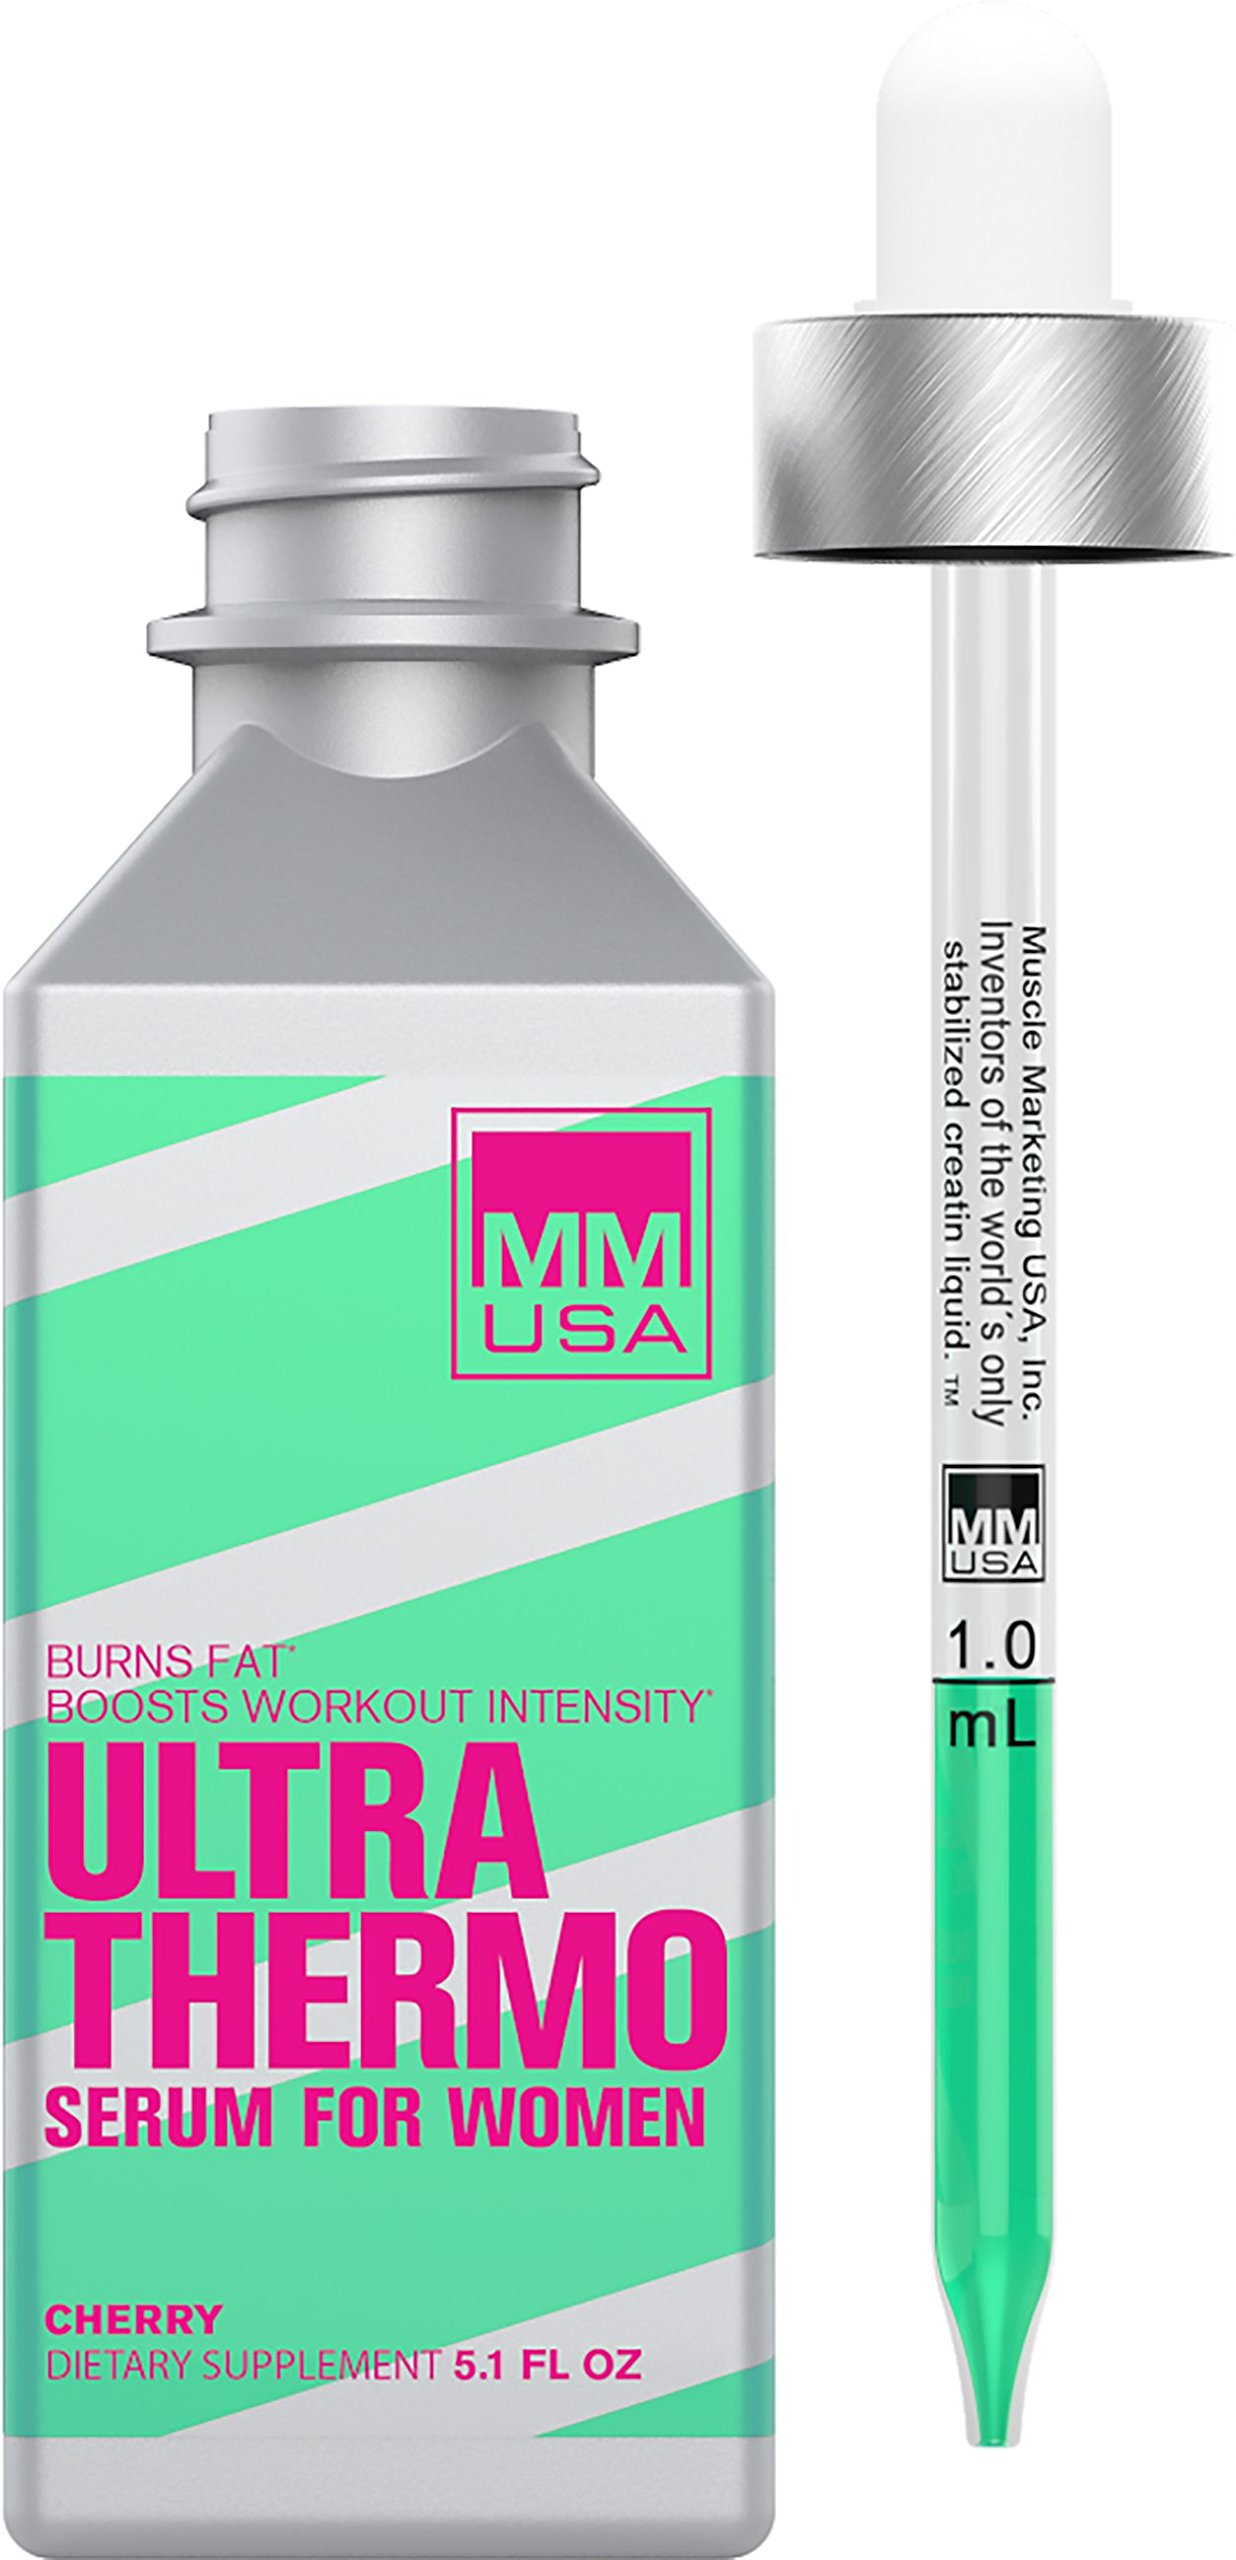 MMUSA Ultra Thermo Serum. Weight loss for women, Burns stubborn fat, Boosts metabolism, Provides steady Pure Energy and Strength. Pre-workout for intense exercise. Stable creatine HCL.